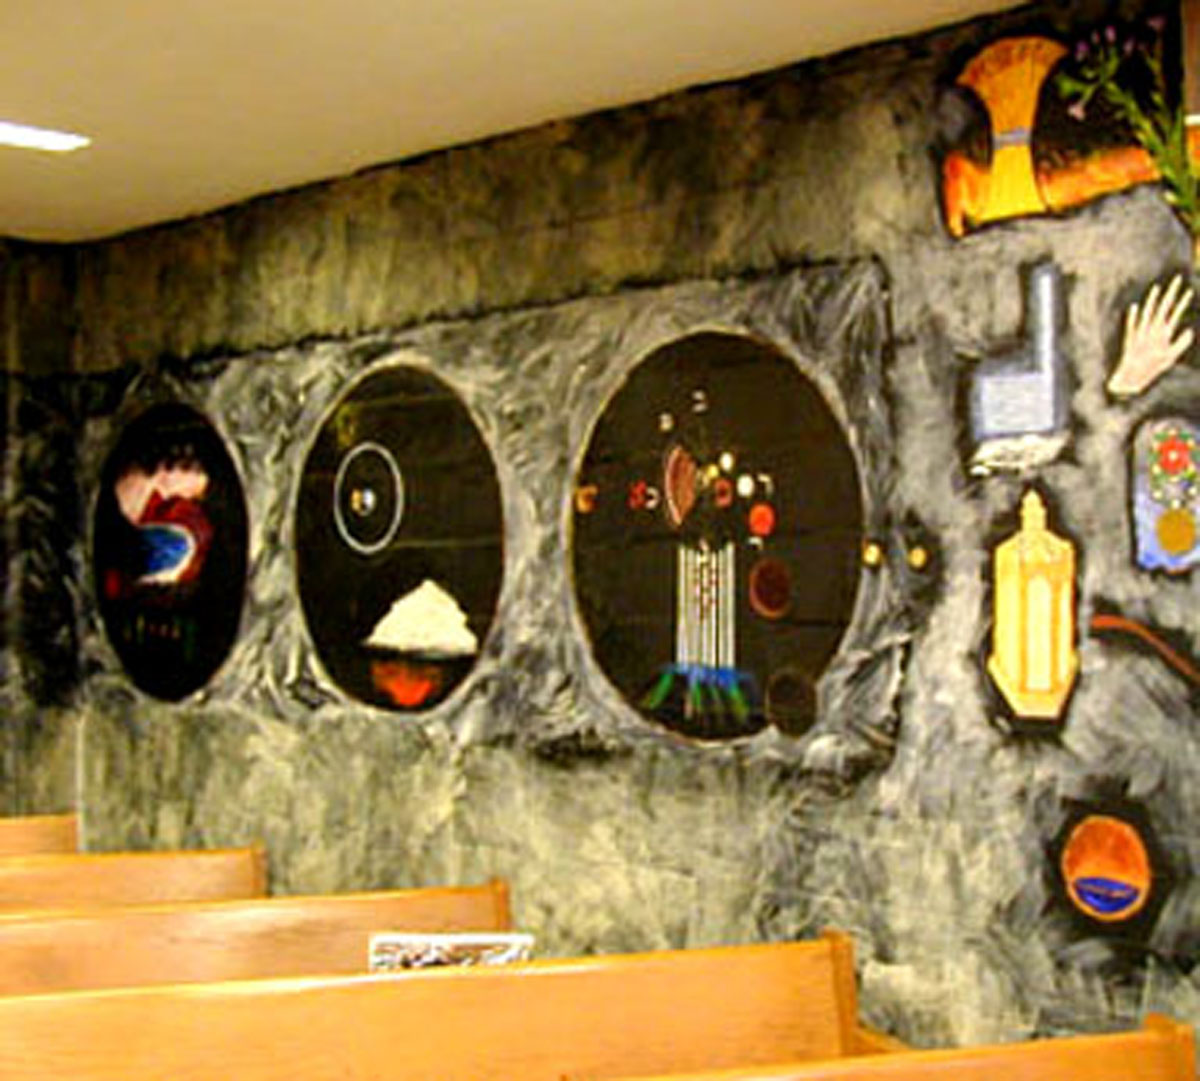 Genesis Corner, Mural by Archie Rand (ca. 1977) B'nai Yosef Synagogue, Brooklyn, New York